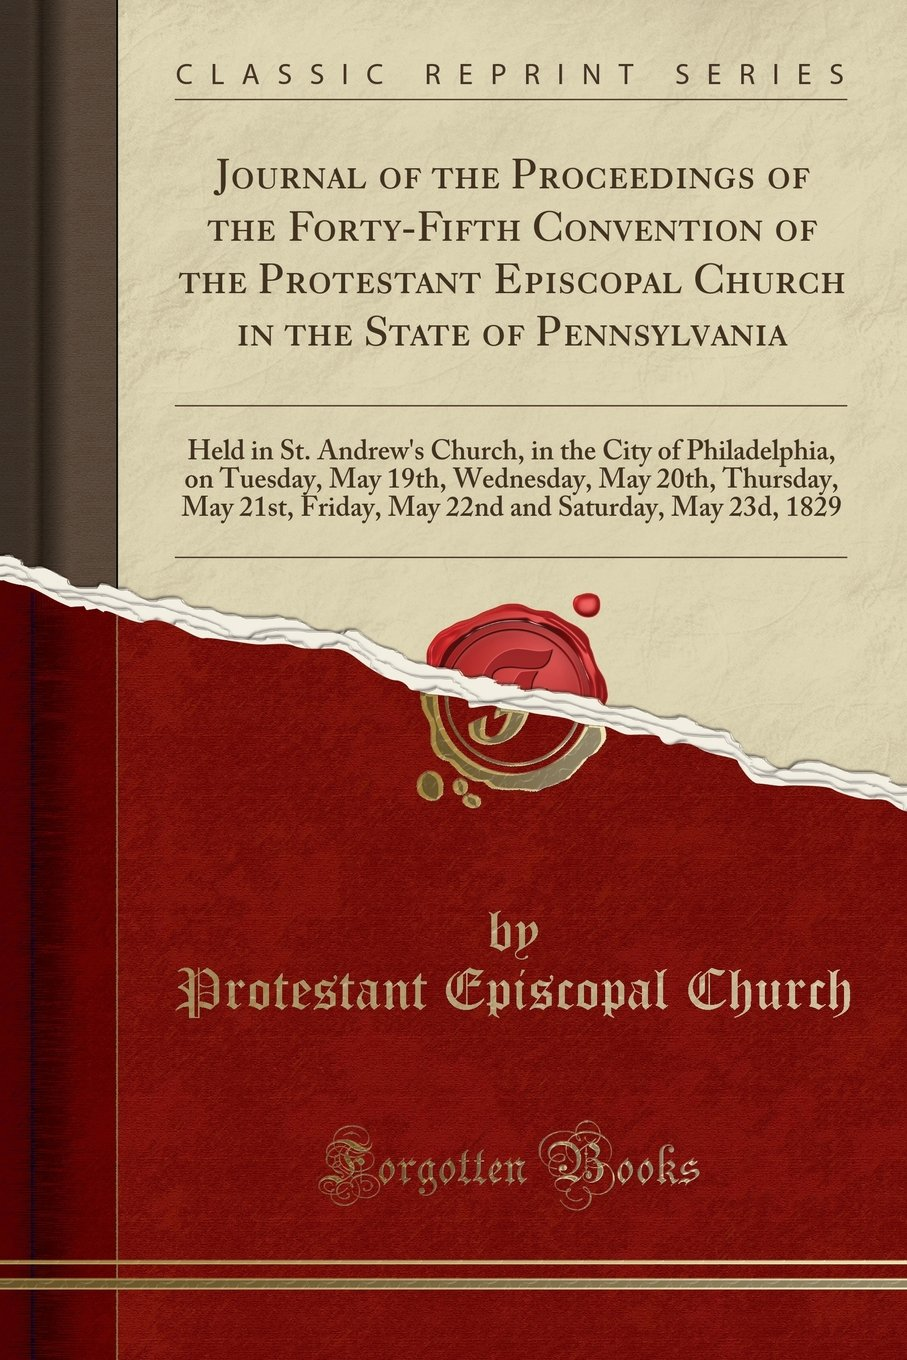 Download Journal of the Proceedings of the Forty-Fifth Convention of the Protestant Episcopal Church in the State of Pennsylvania: Held in St. Andrew's Church, ... May 20th, Thursday, May 21st, Friday, May ebook